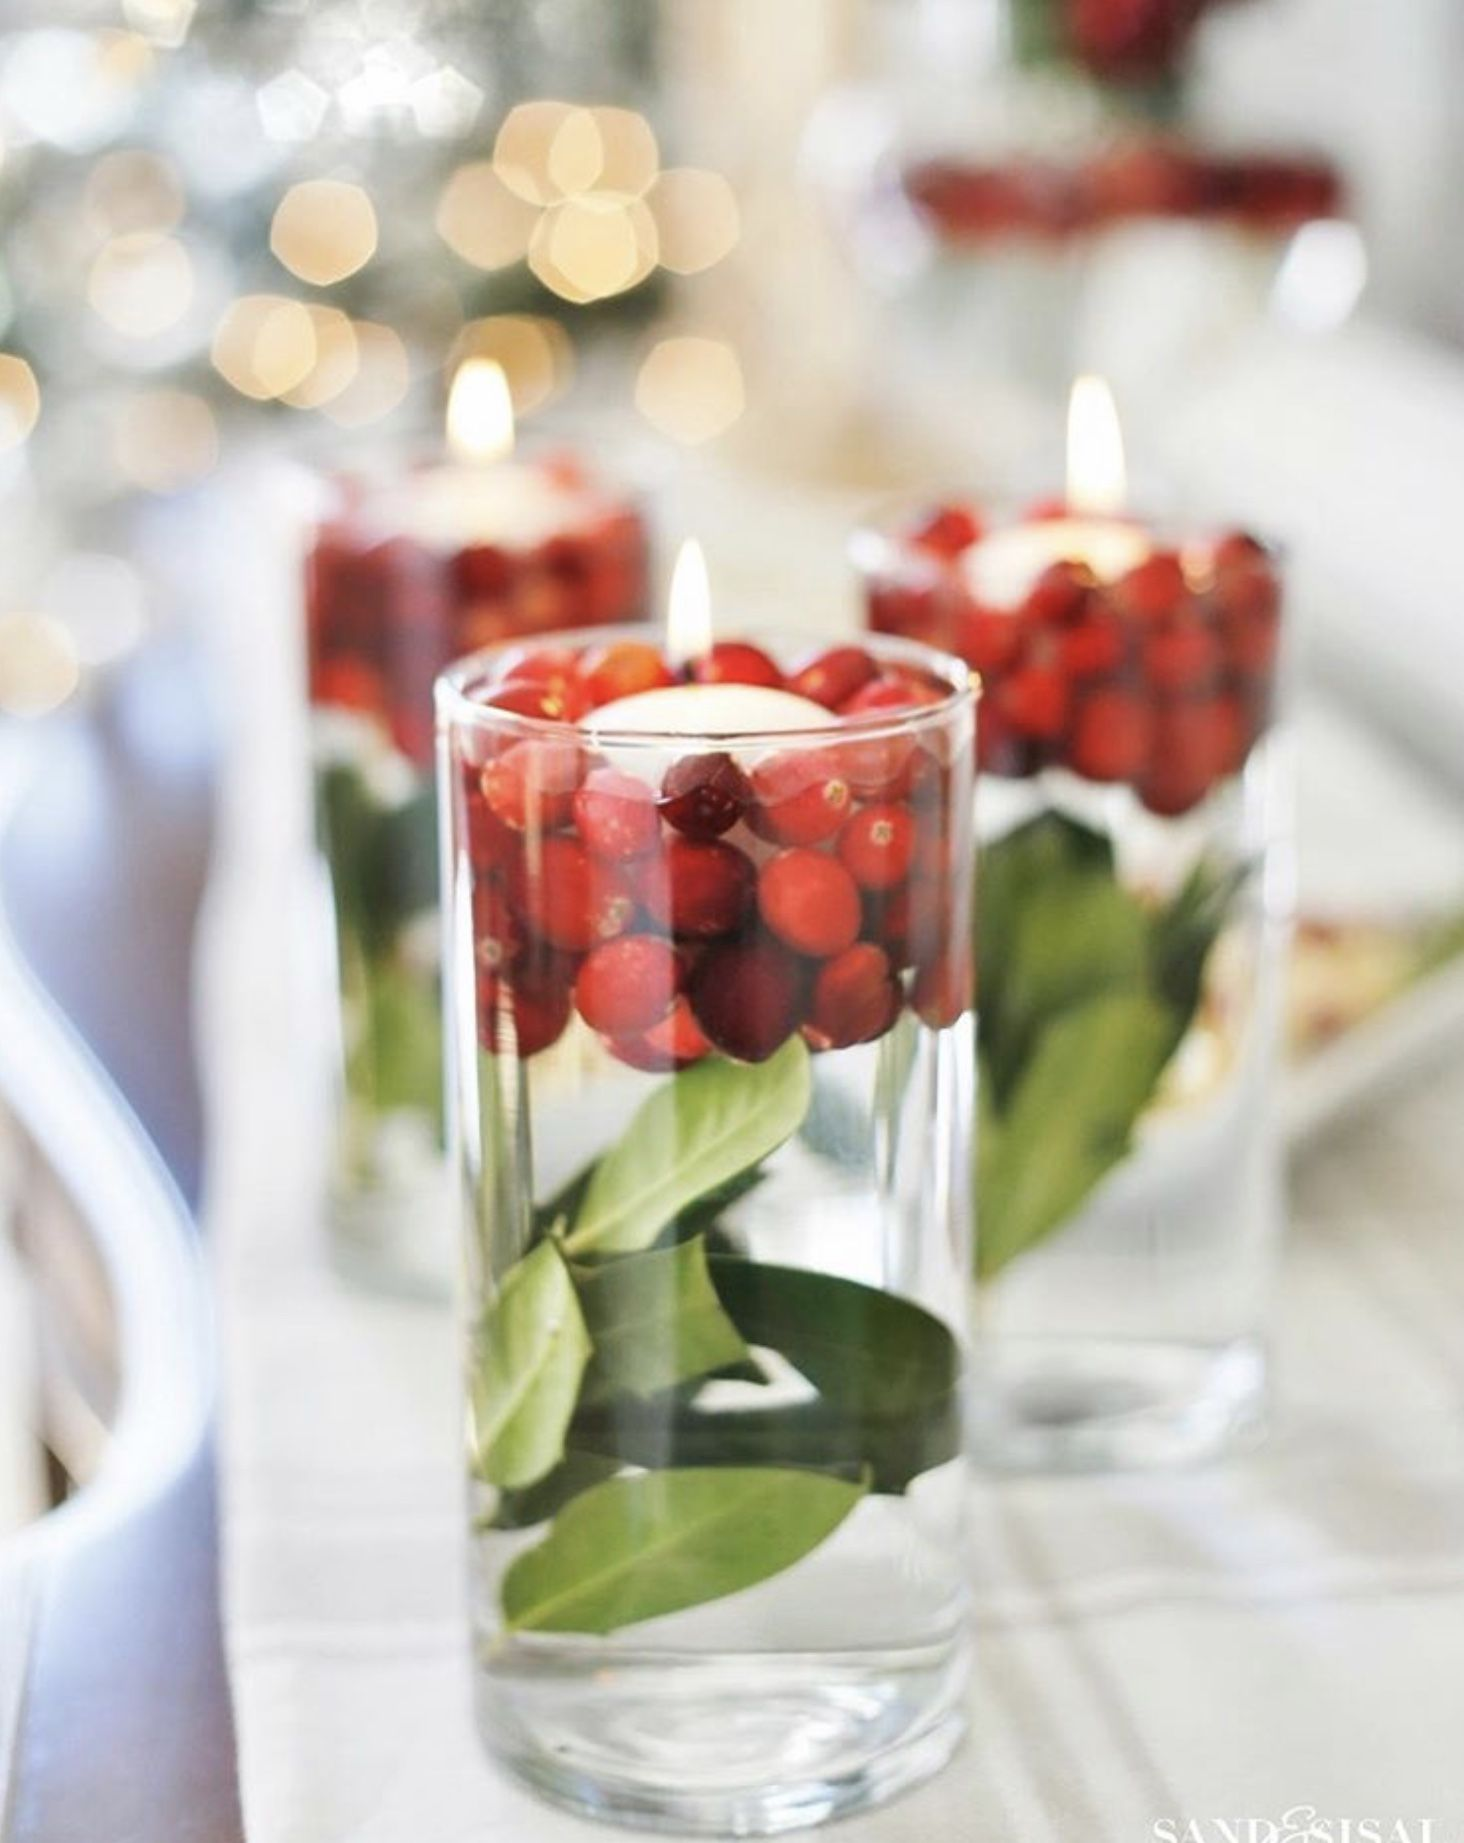 Crane Berries And Floating Candle In 2020 Christmas Table Decorations Christmas Cocktail Party Christmas Vases